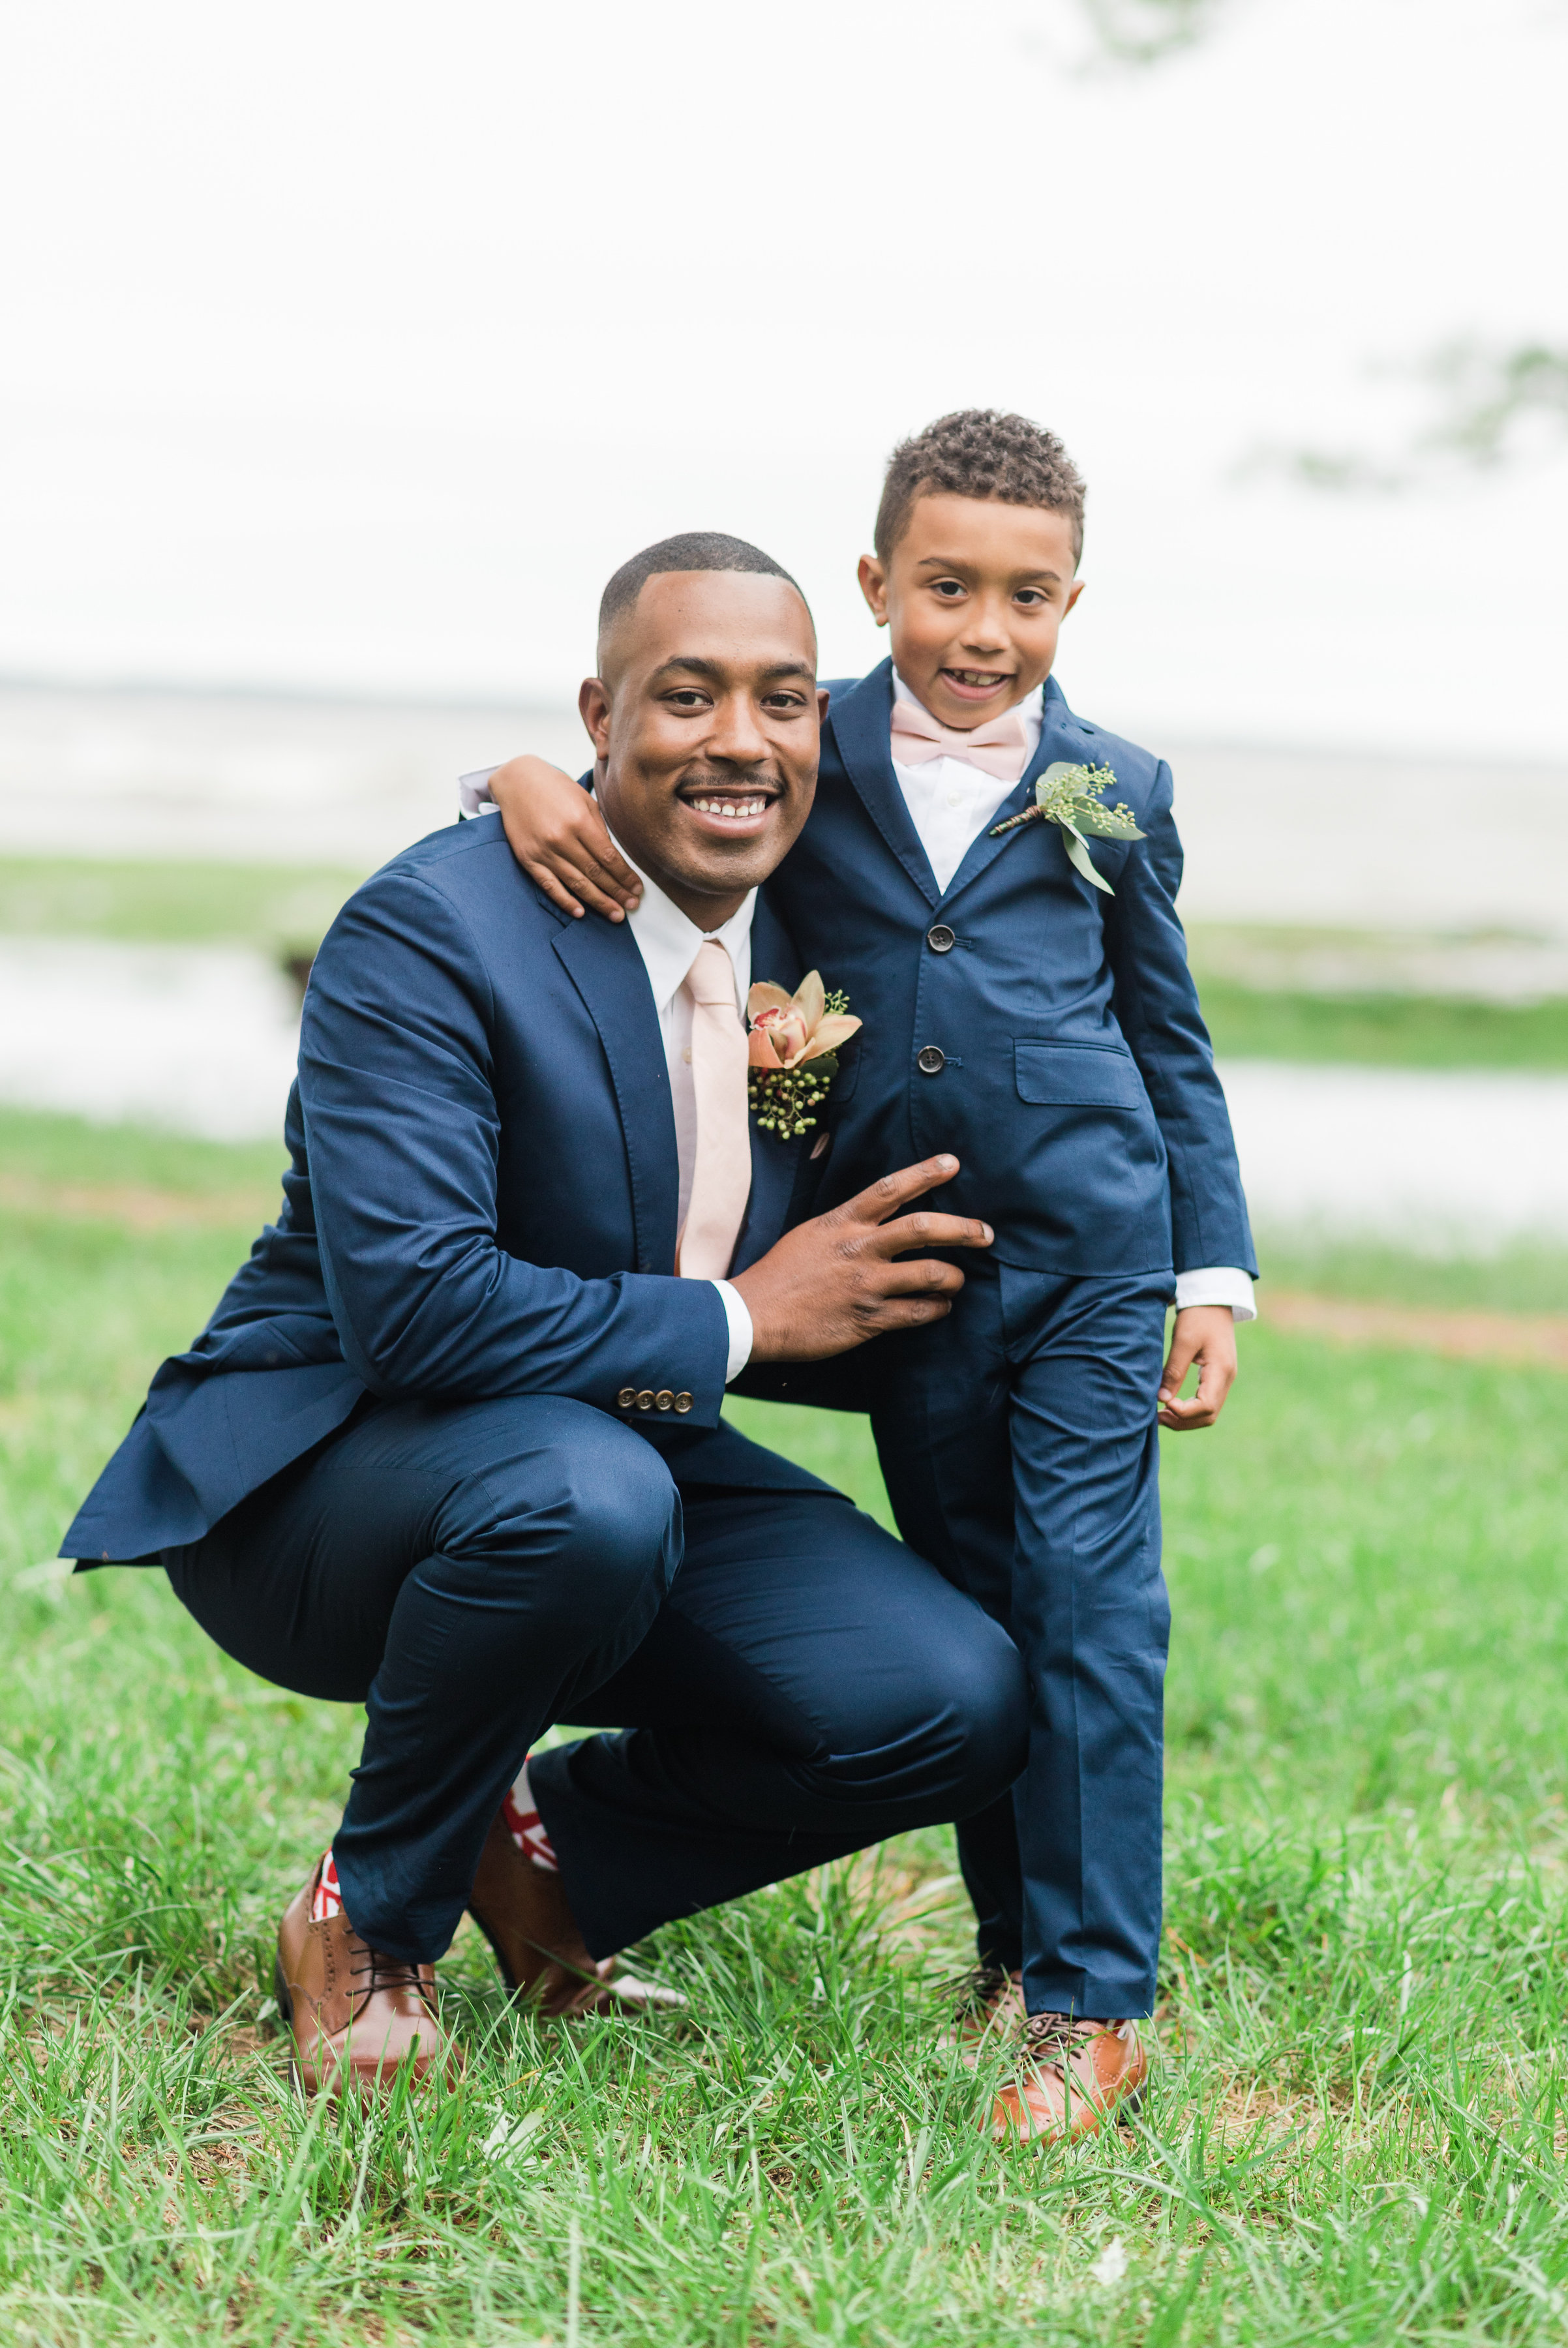 Groom_Father_Son